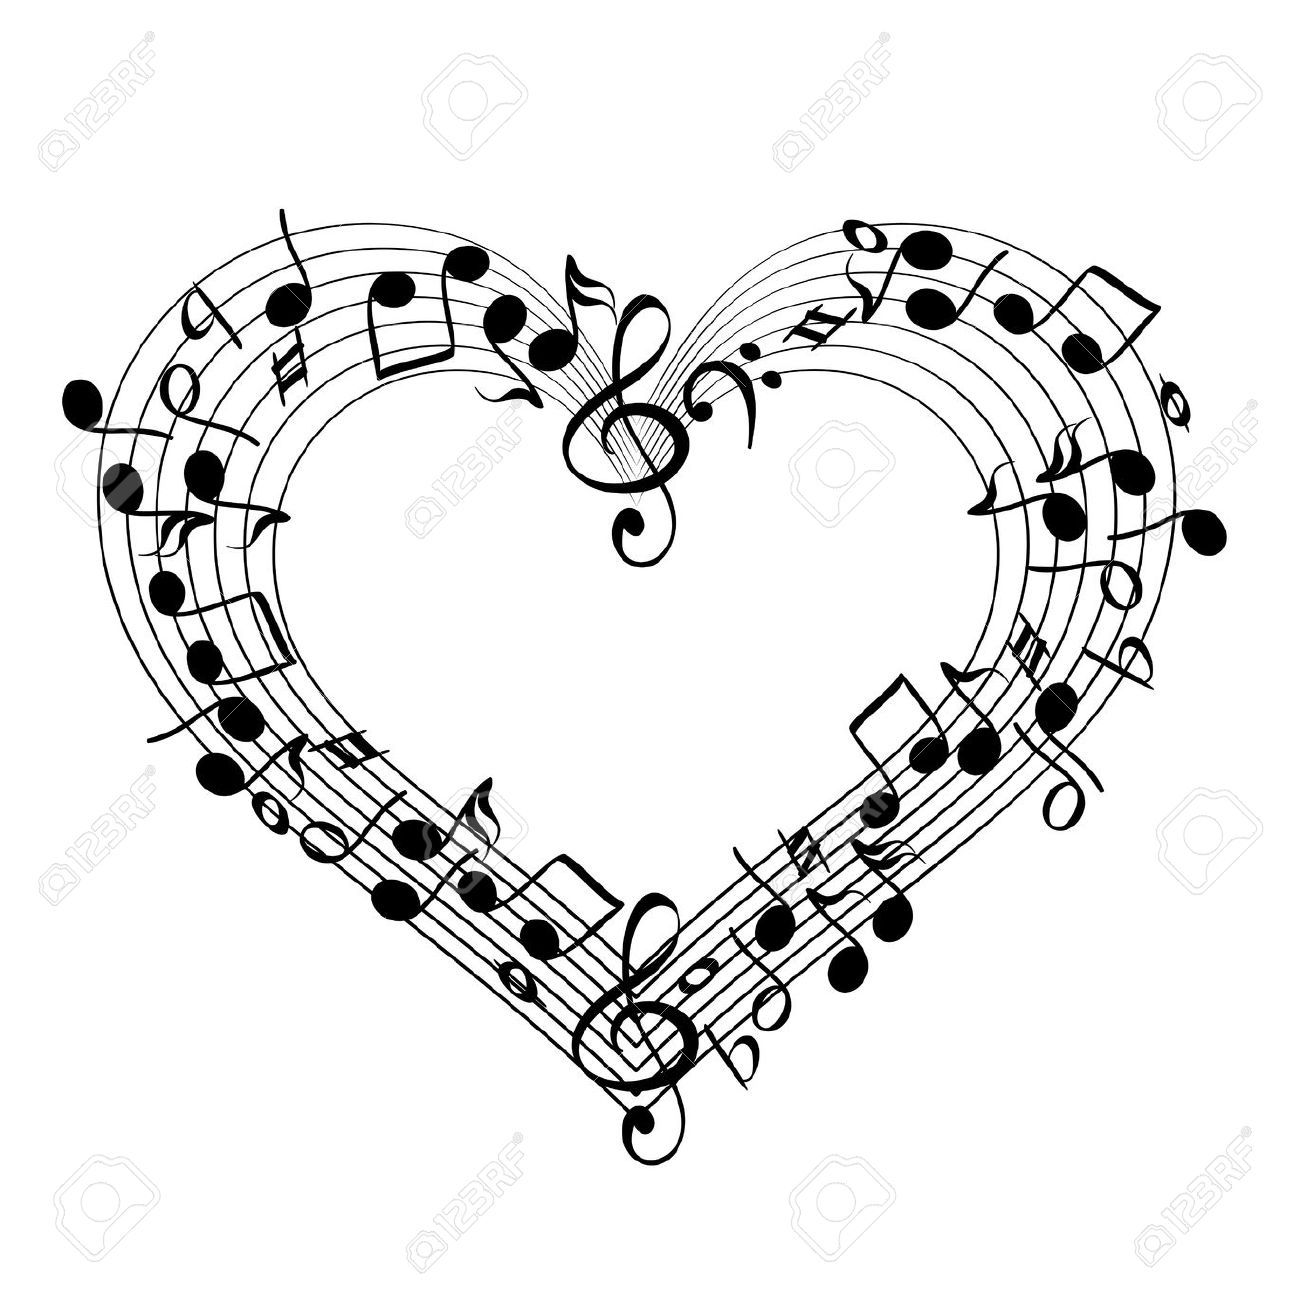 Music clipart heart. Image to download love